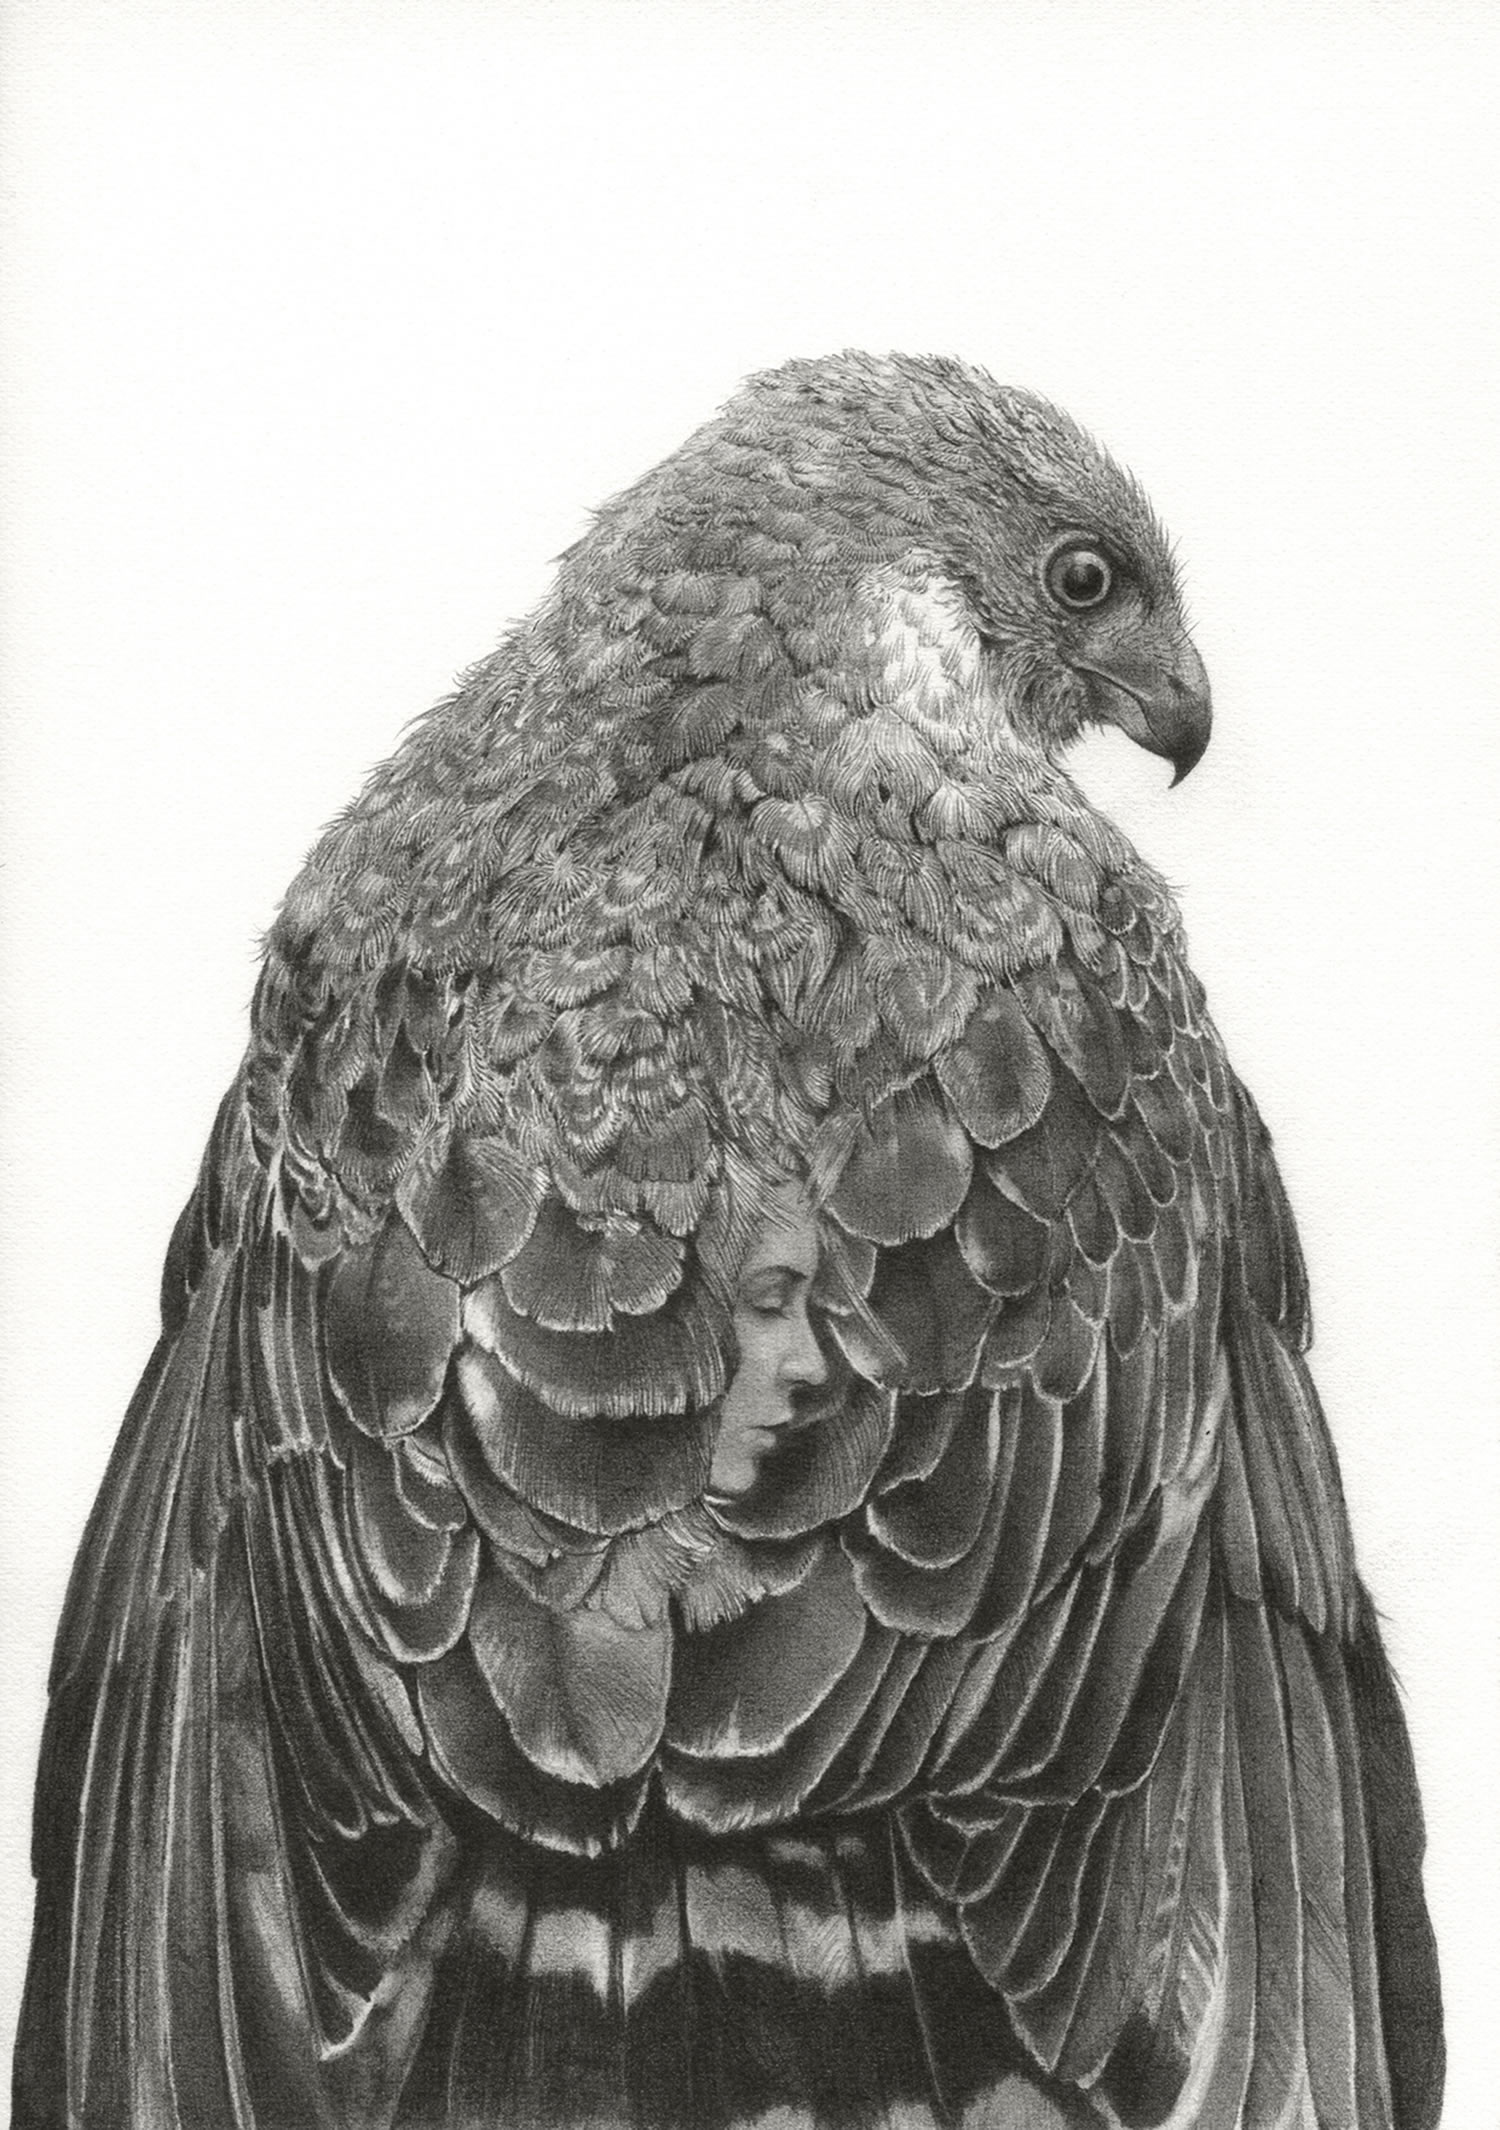 hawk drawing, woman hidden in feathers